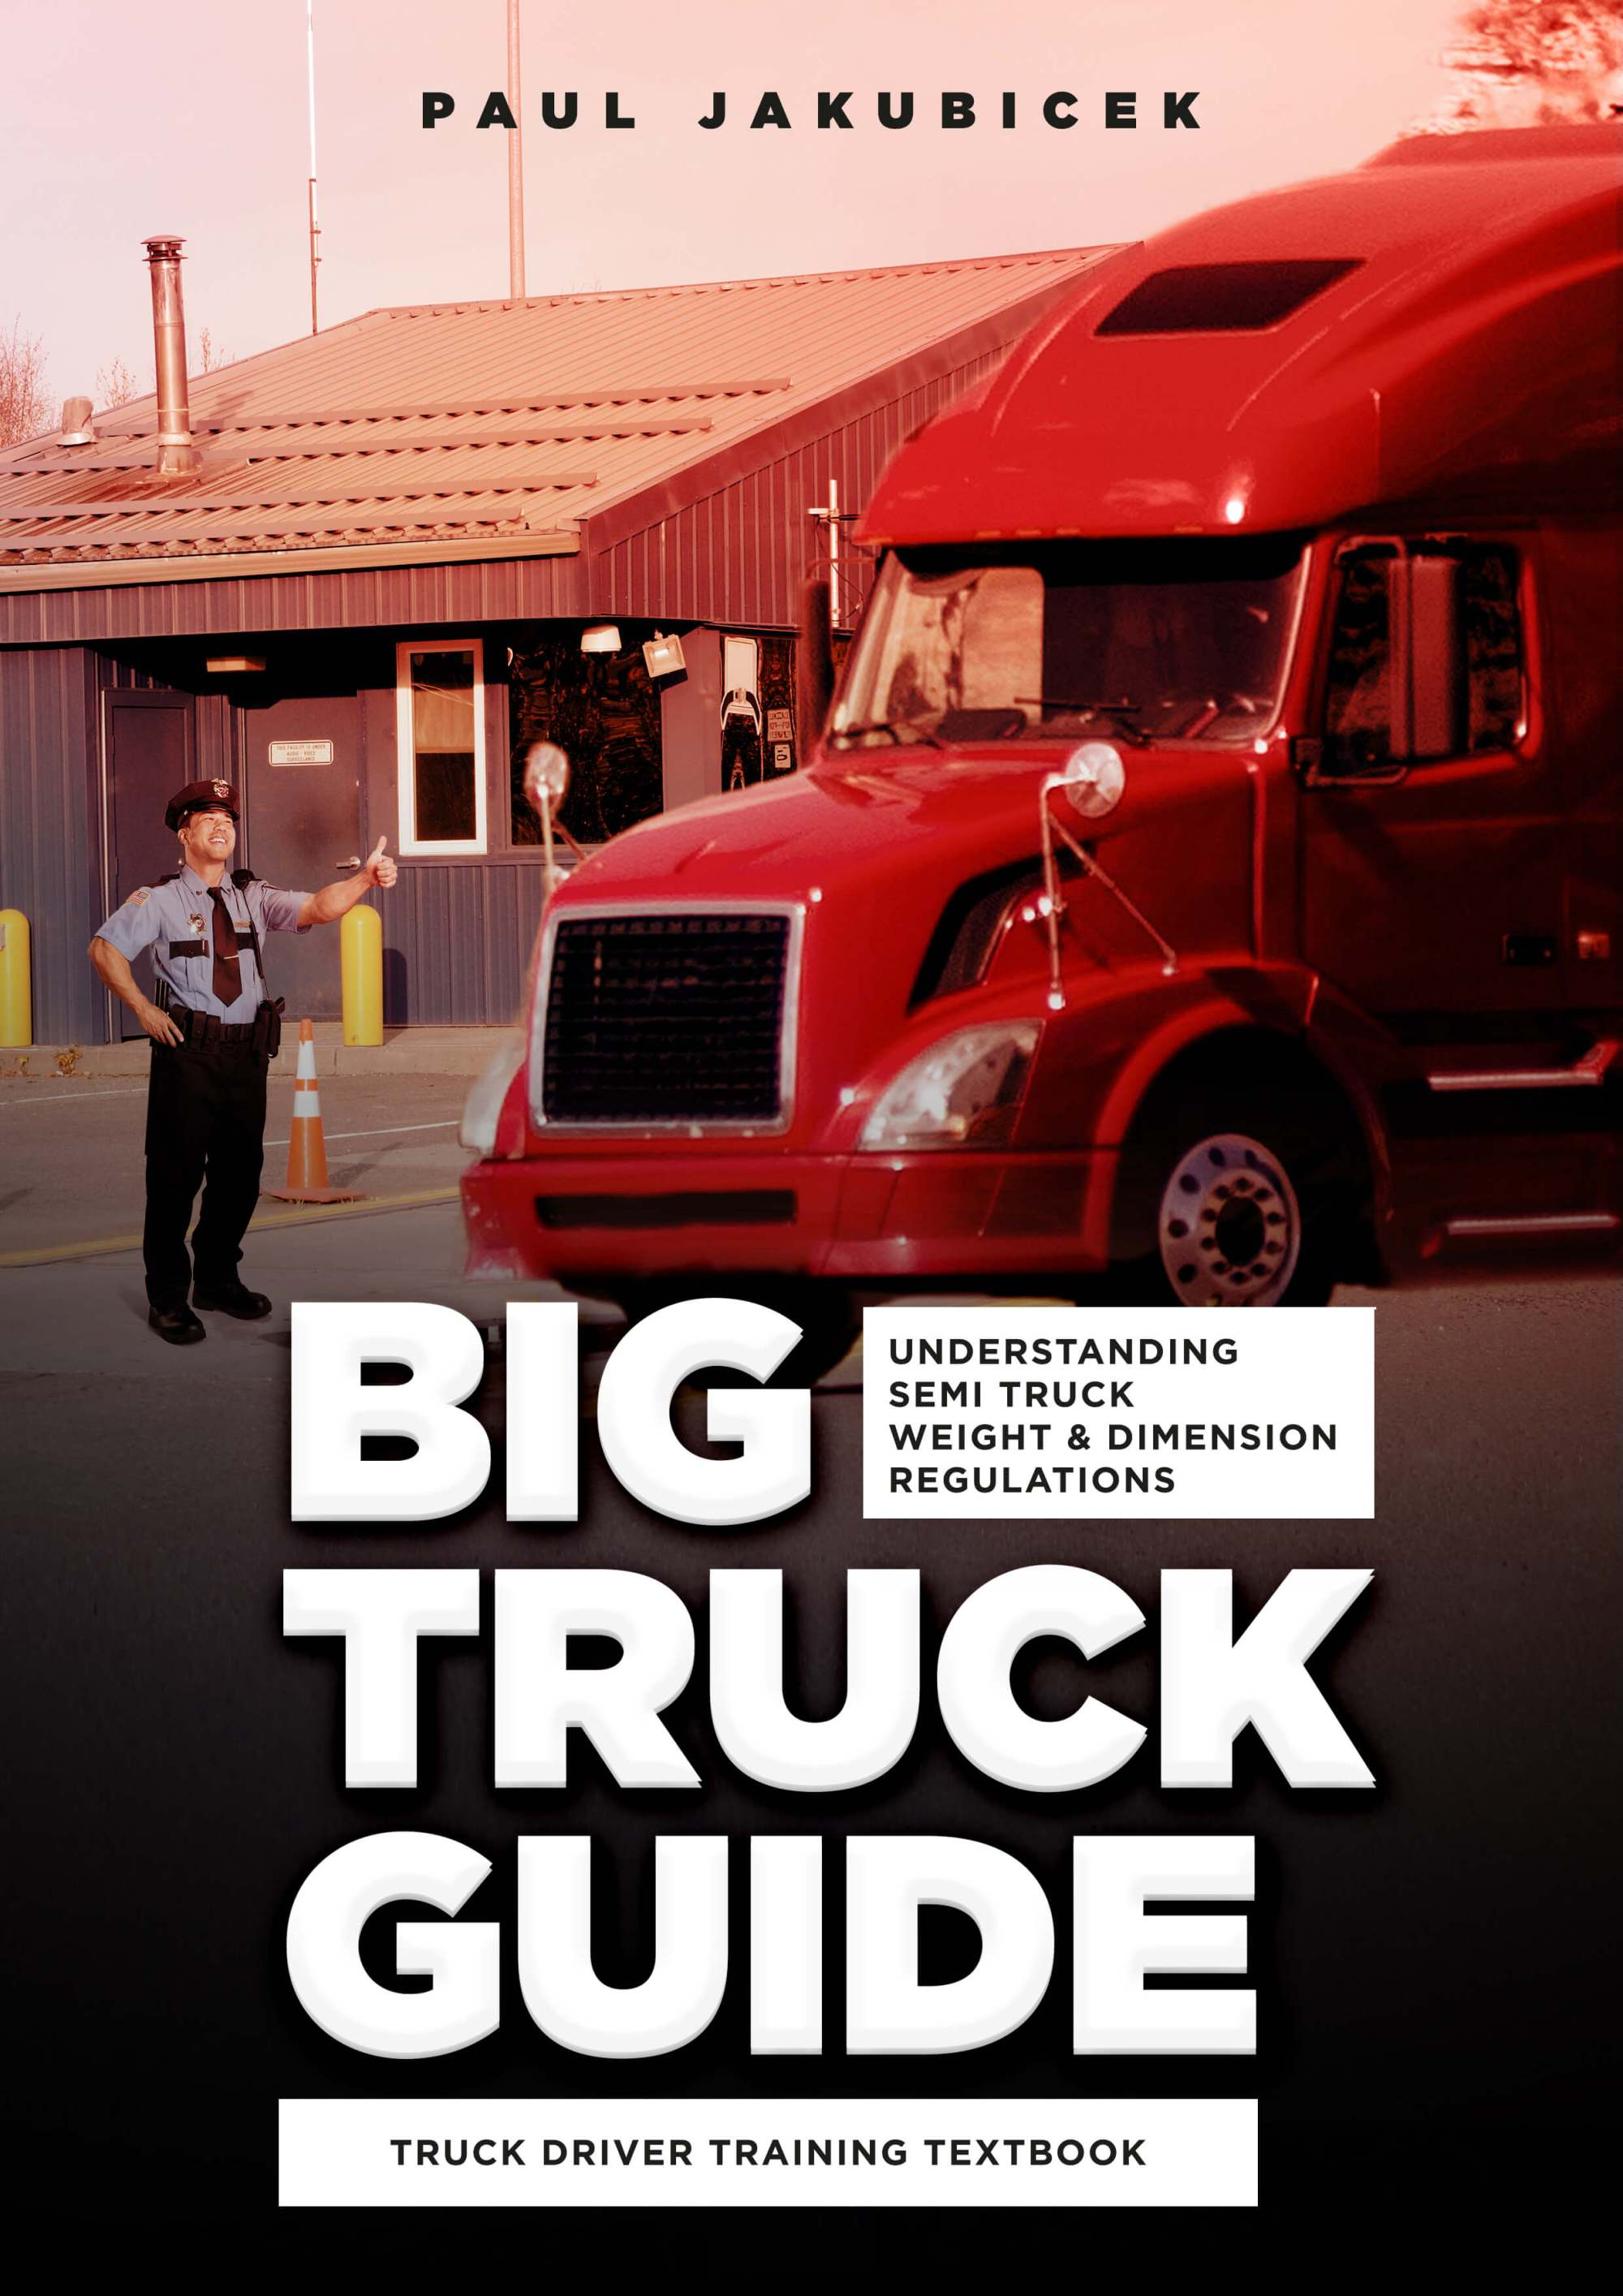 hight resolution of understanding truck weights and dimensions e textbook and training program